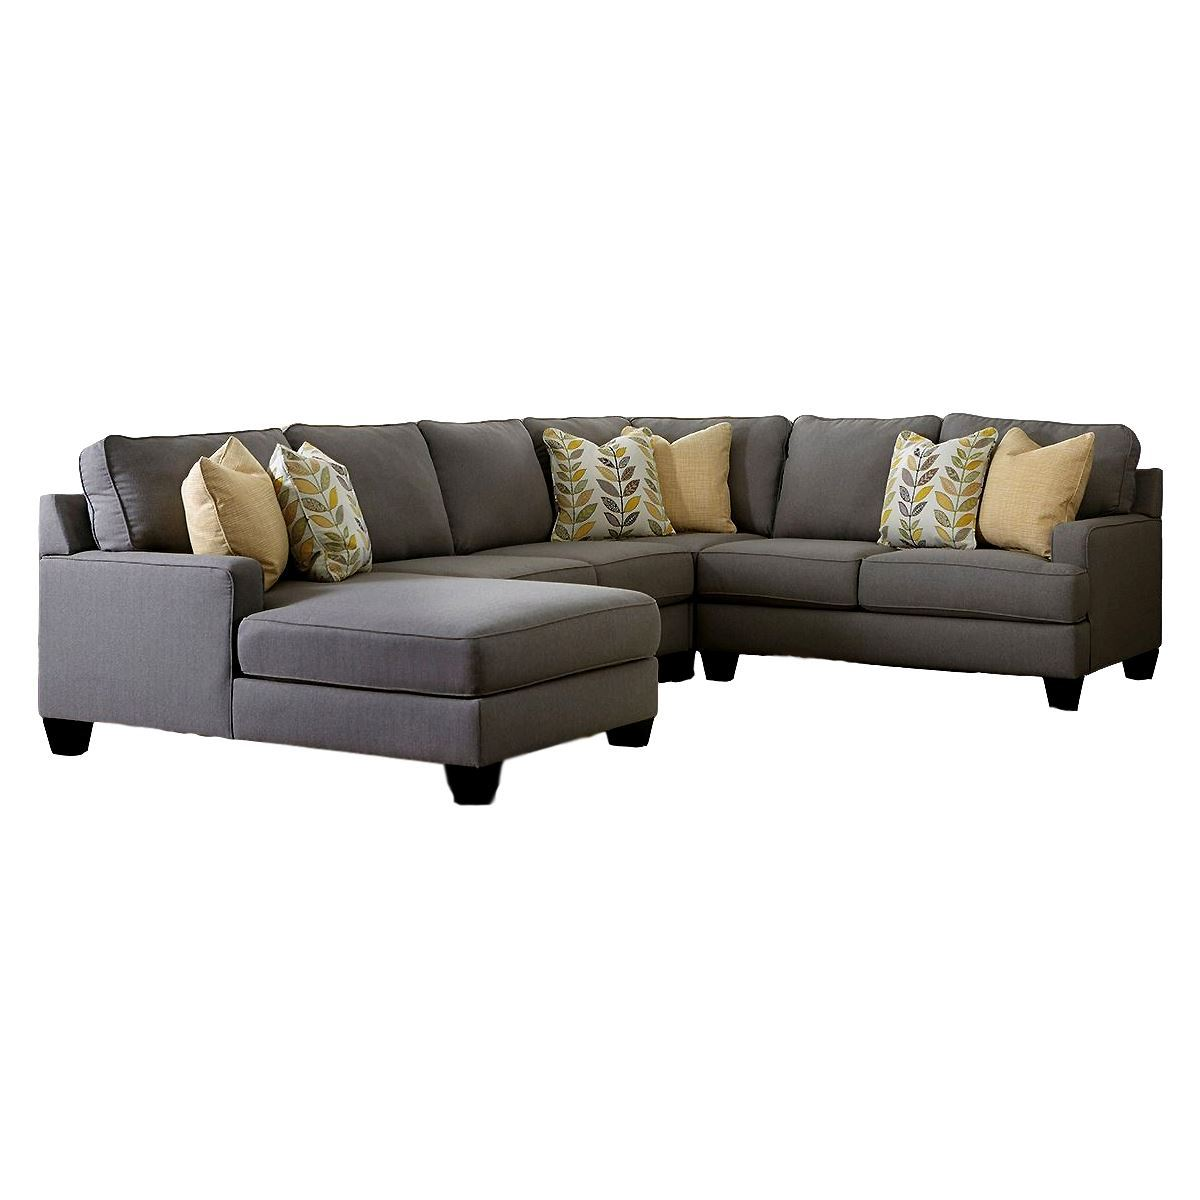 Sharon 4 Piece Sectional Sofa Set | Living Room Sectional Sofas ...